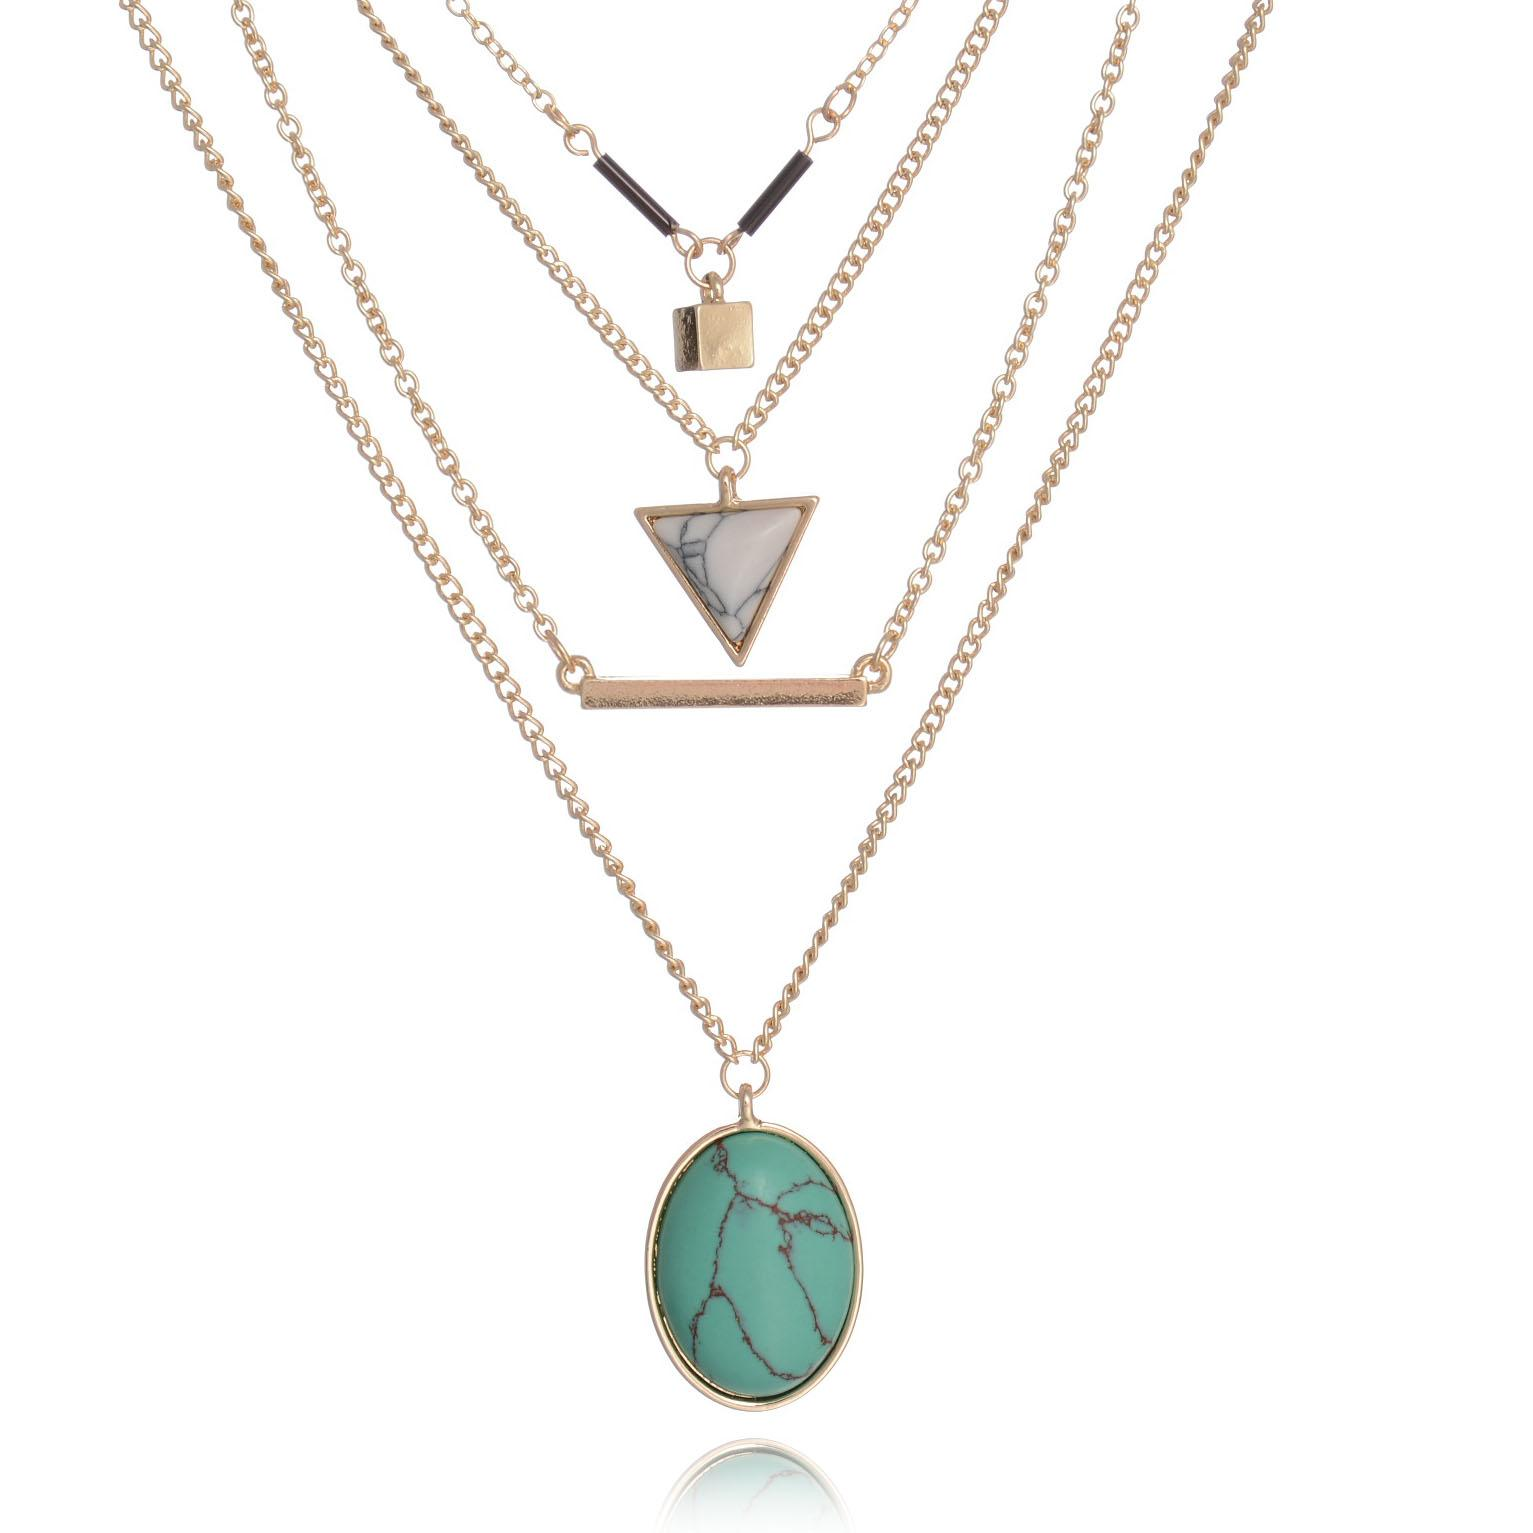 mini rose necklace in plated clarke lyst floris stone gold jewelry metallic astley pendant turquoise